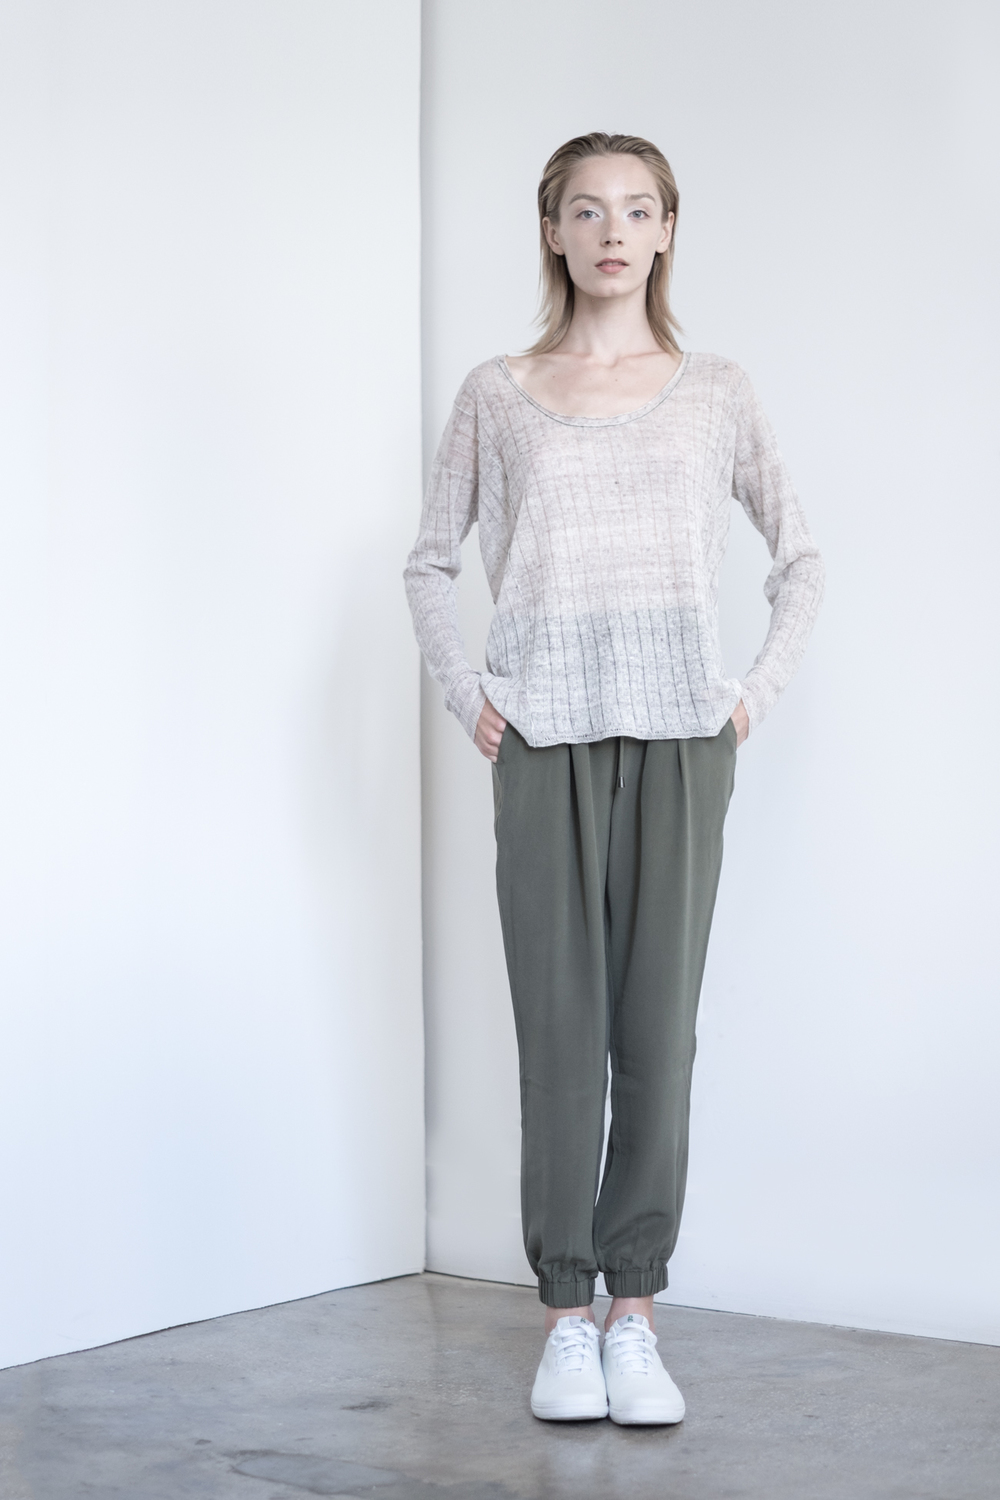 LOOK 32   TOP:   2230  / Sand   -    Scoop neck long sleeve, in fine gauge Italian linen neps.   BOTTOM:   2203  / Clover -    Jogger pants in 100% Silk.